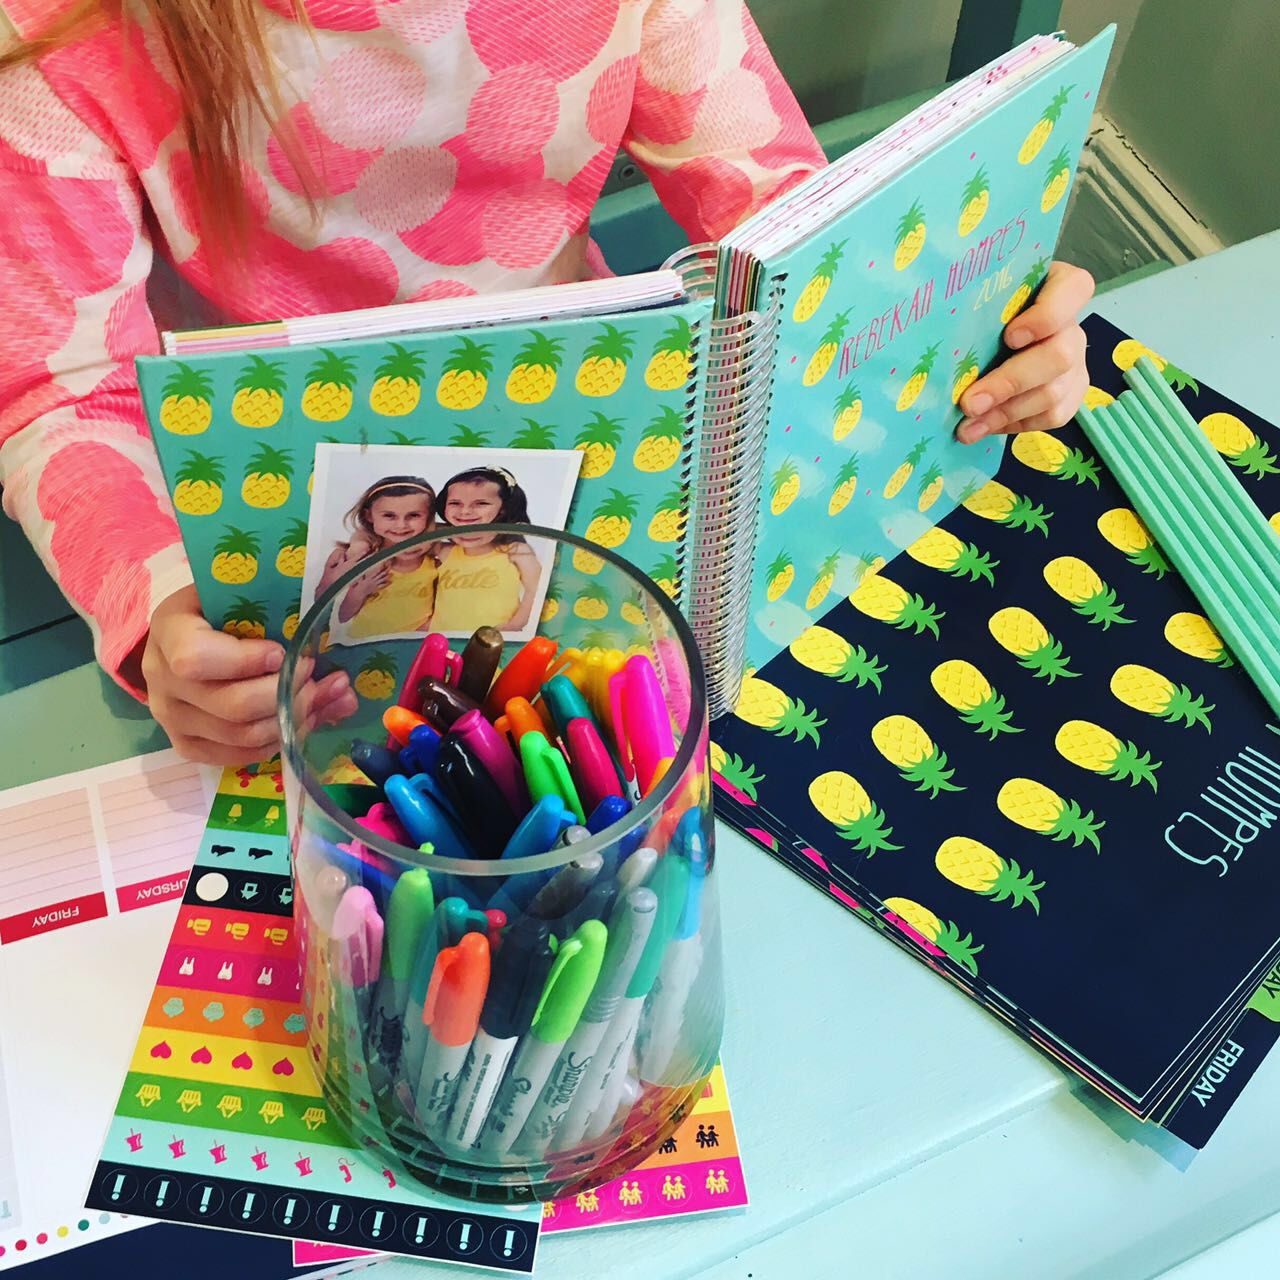 Personalized diary and personalized folders from macaroon.co.za